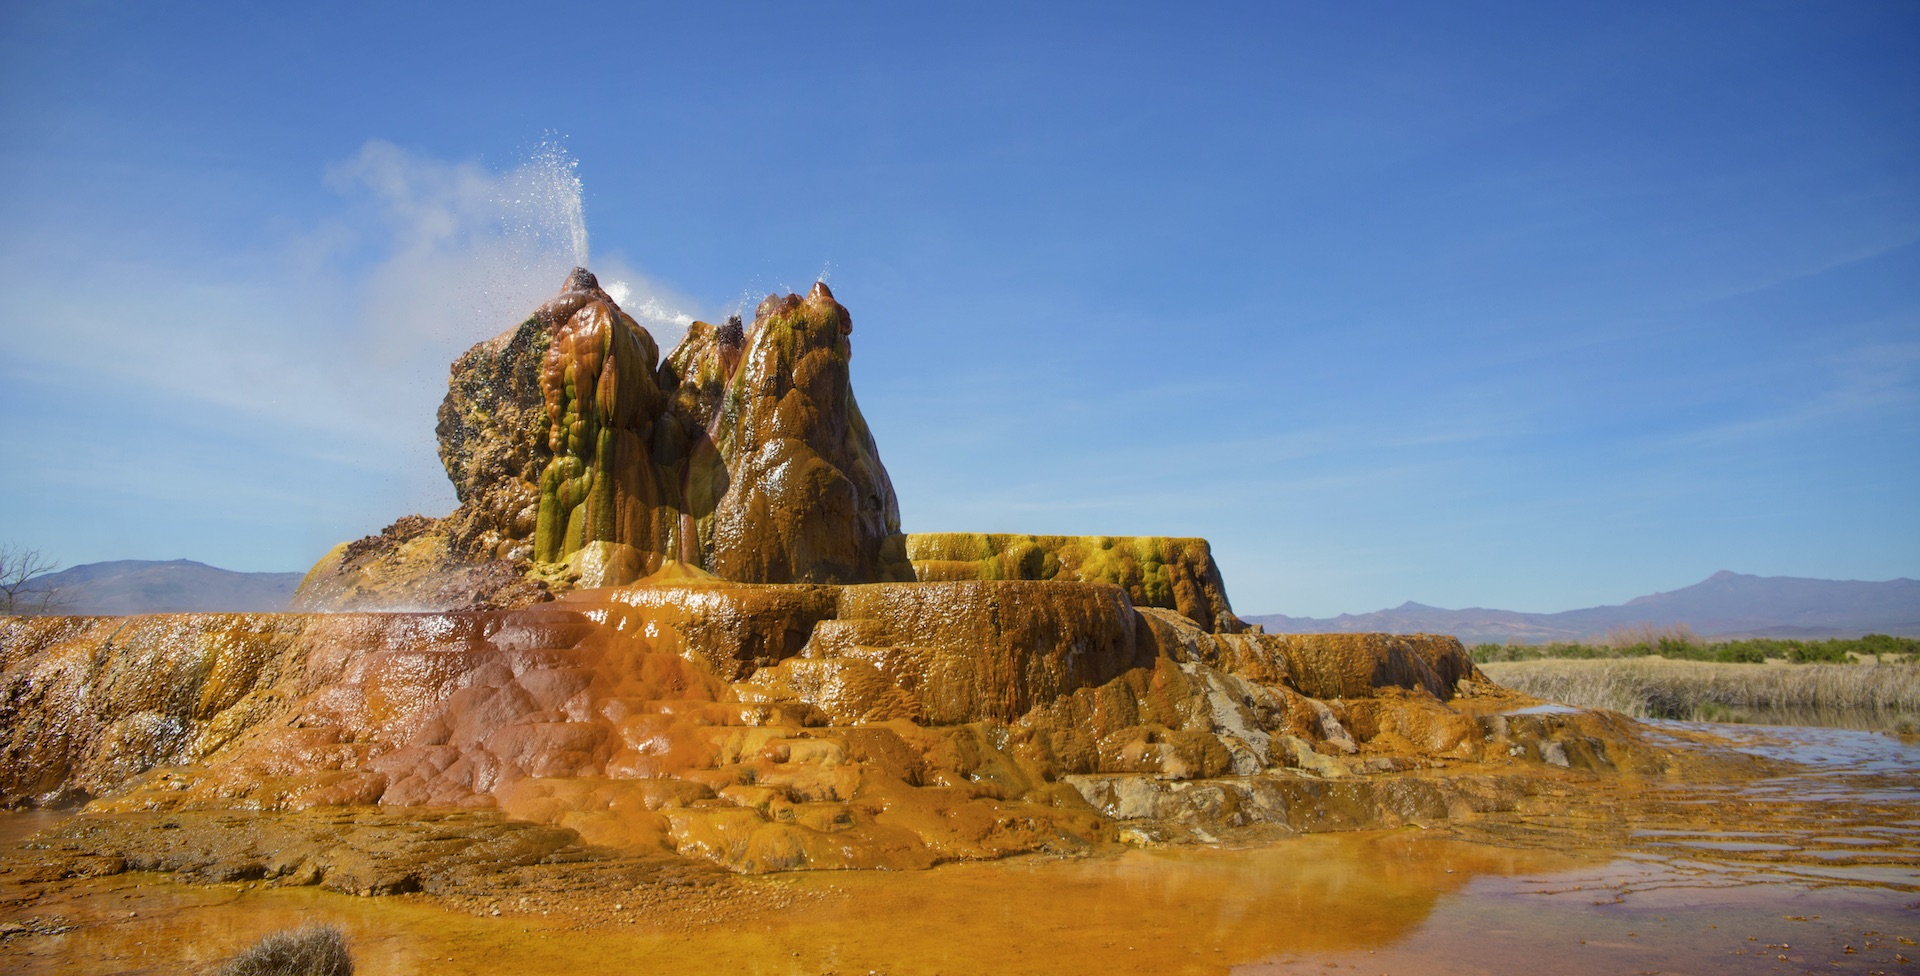 Amazing Fly Geyser Pictures & Backgrounds